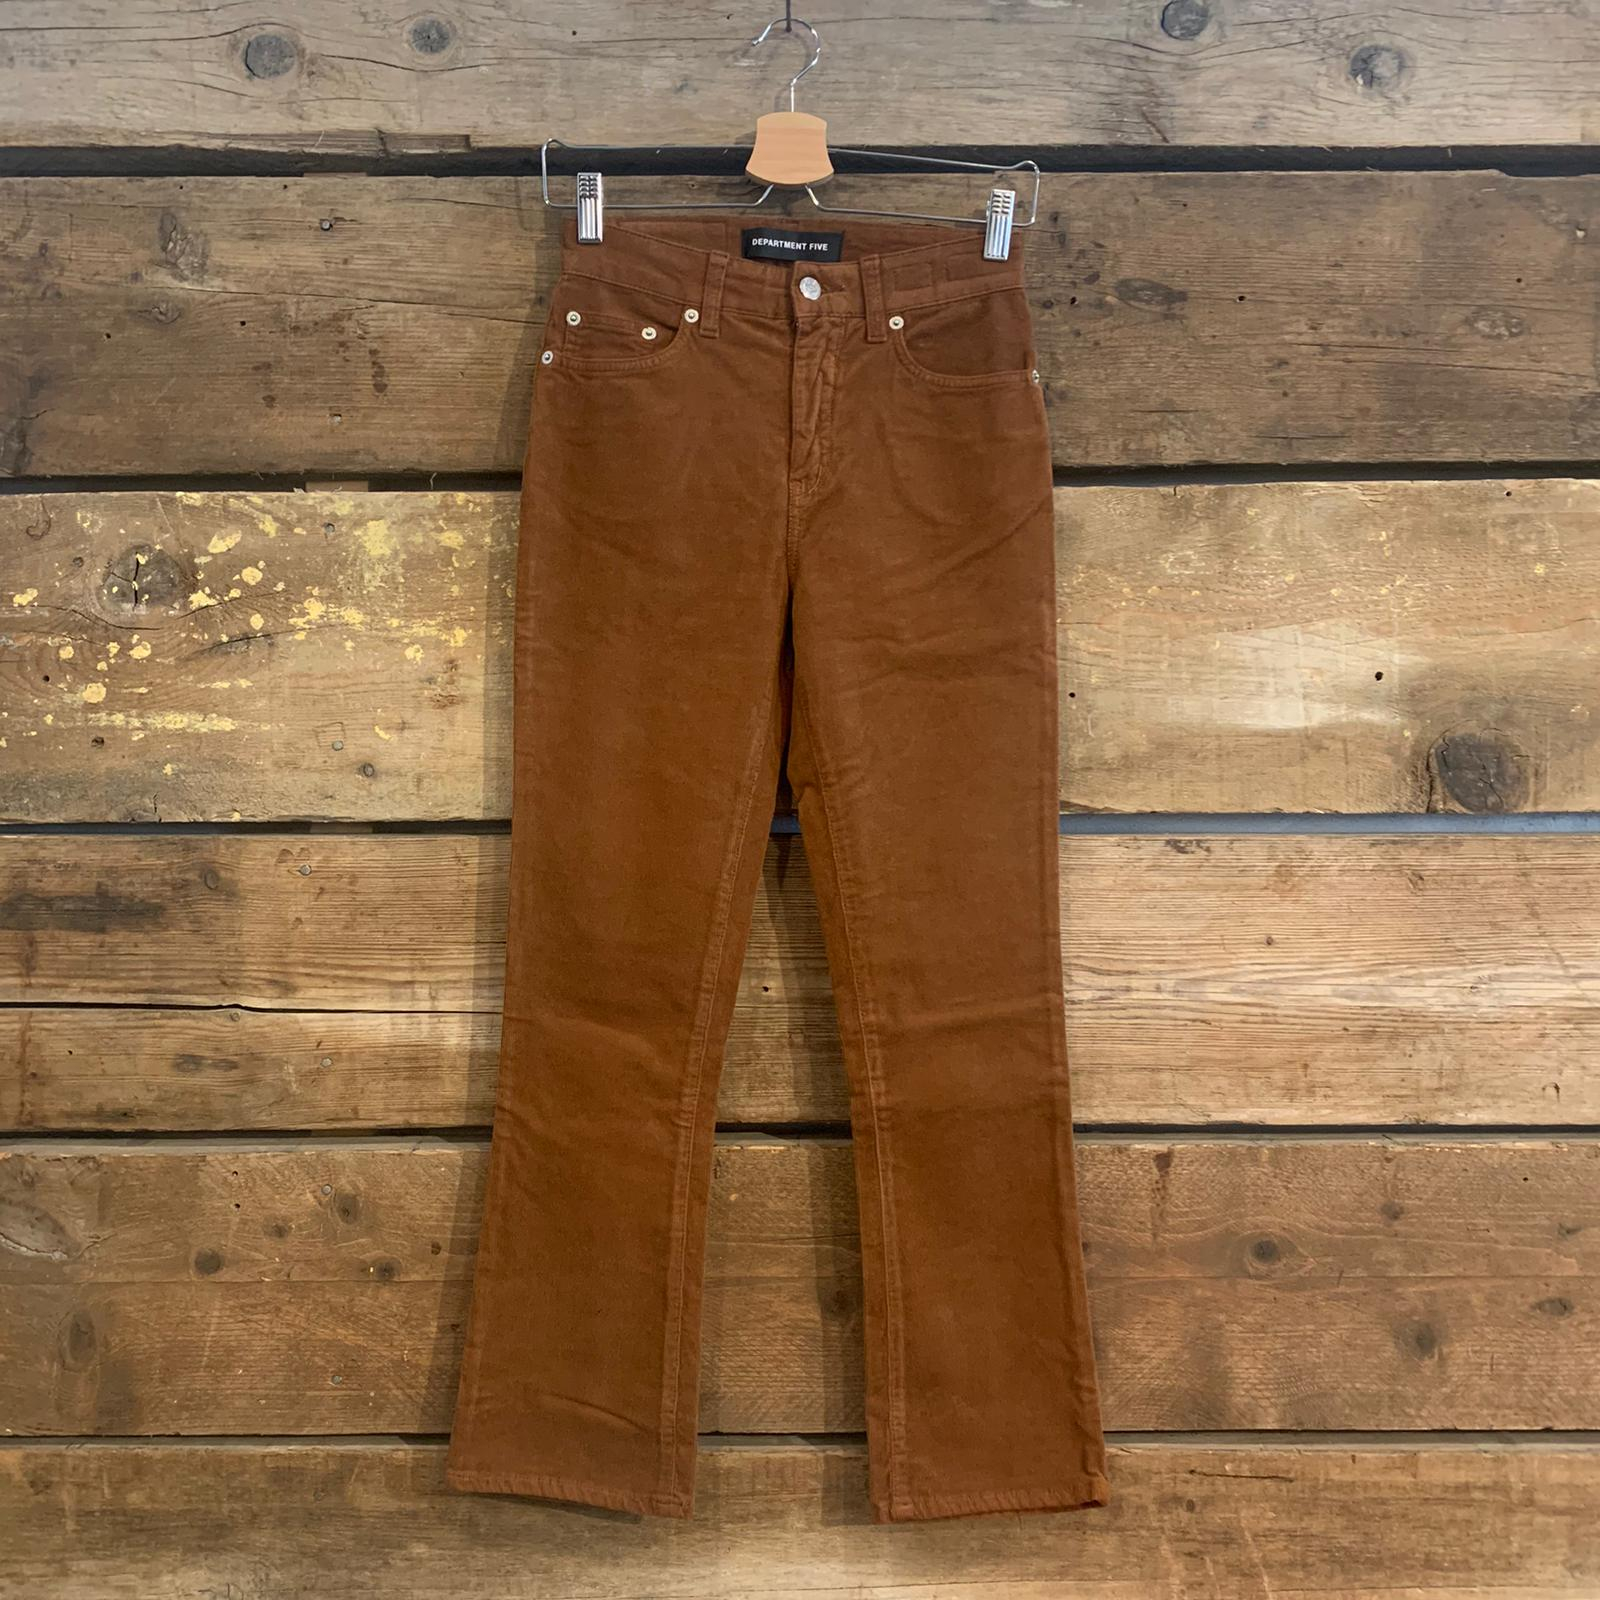 Jeans Department 5 Clar in Velluto a Costine Marrone